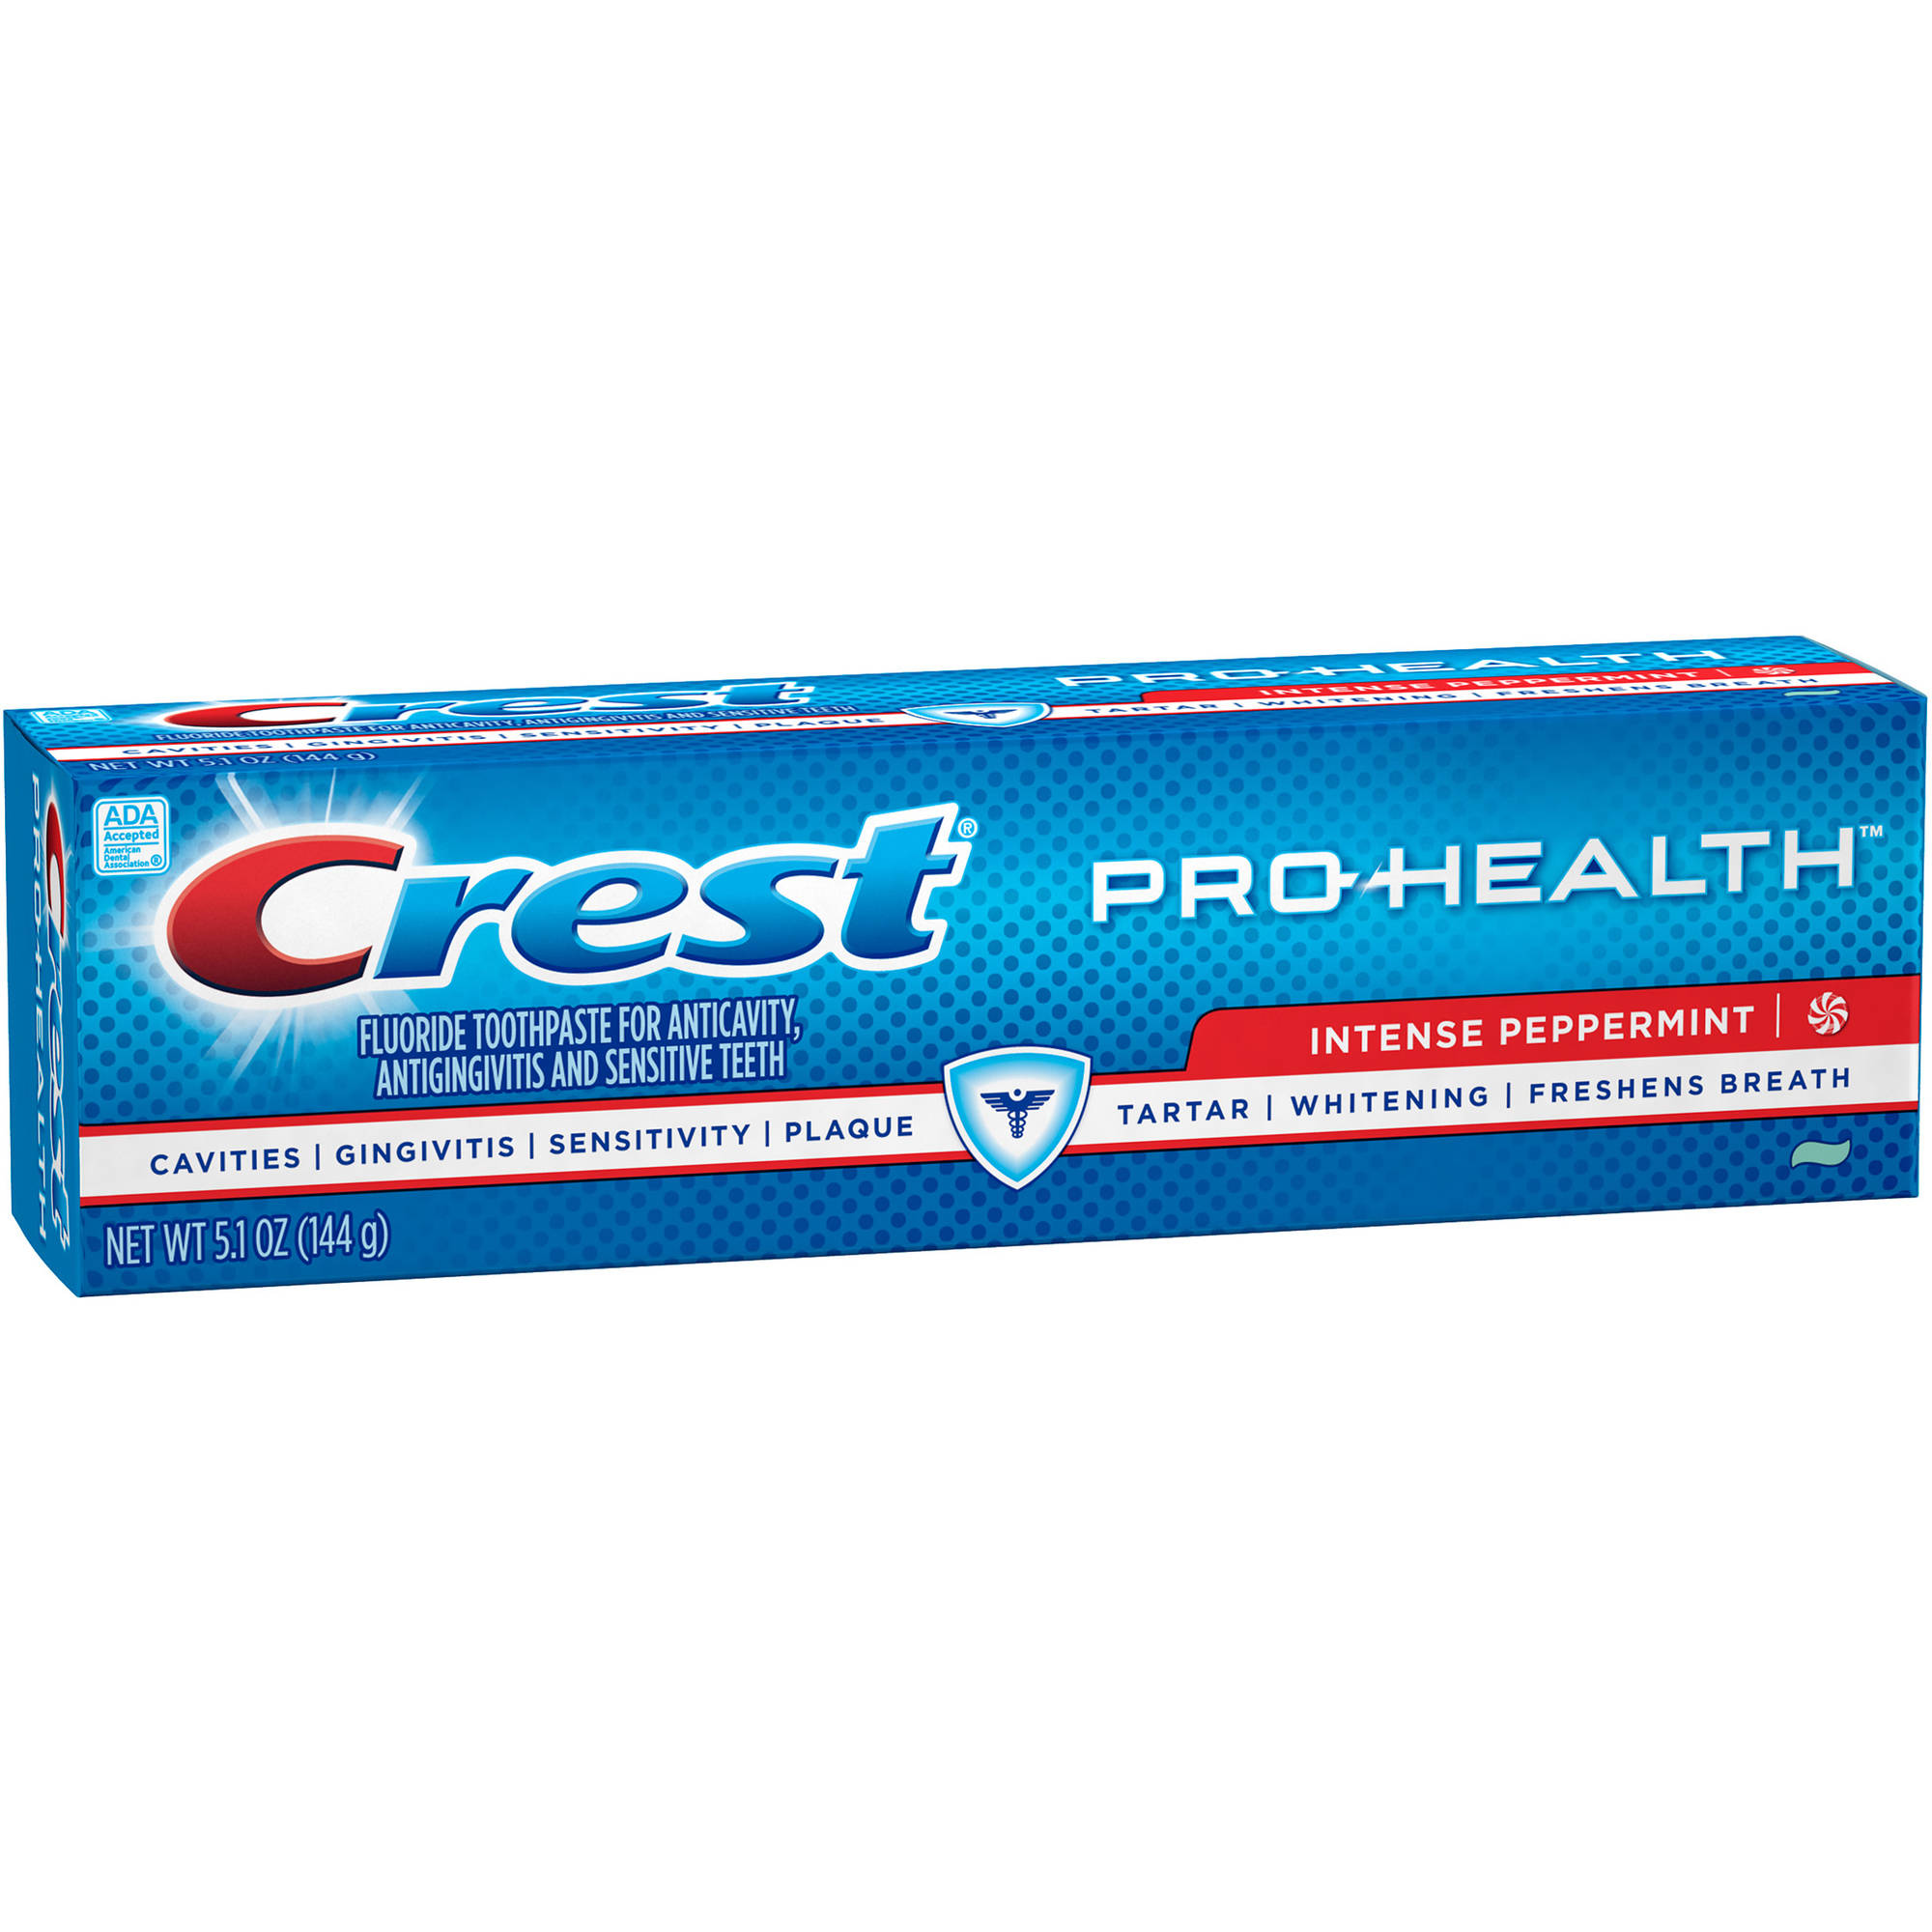 Crest Pro-Health Intense Peppermint Toothpaste, 5.1 oz